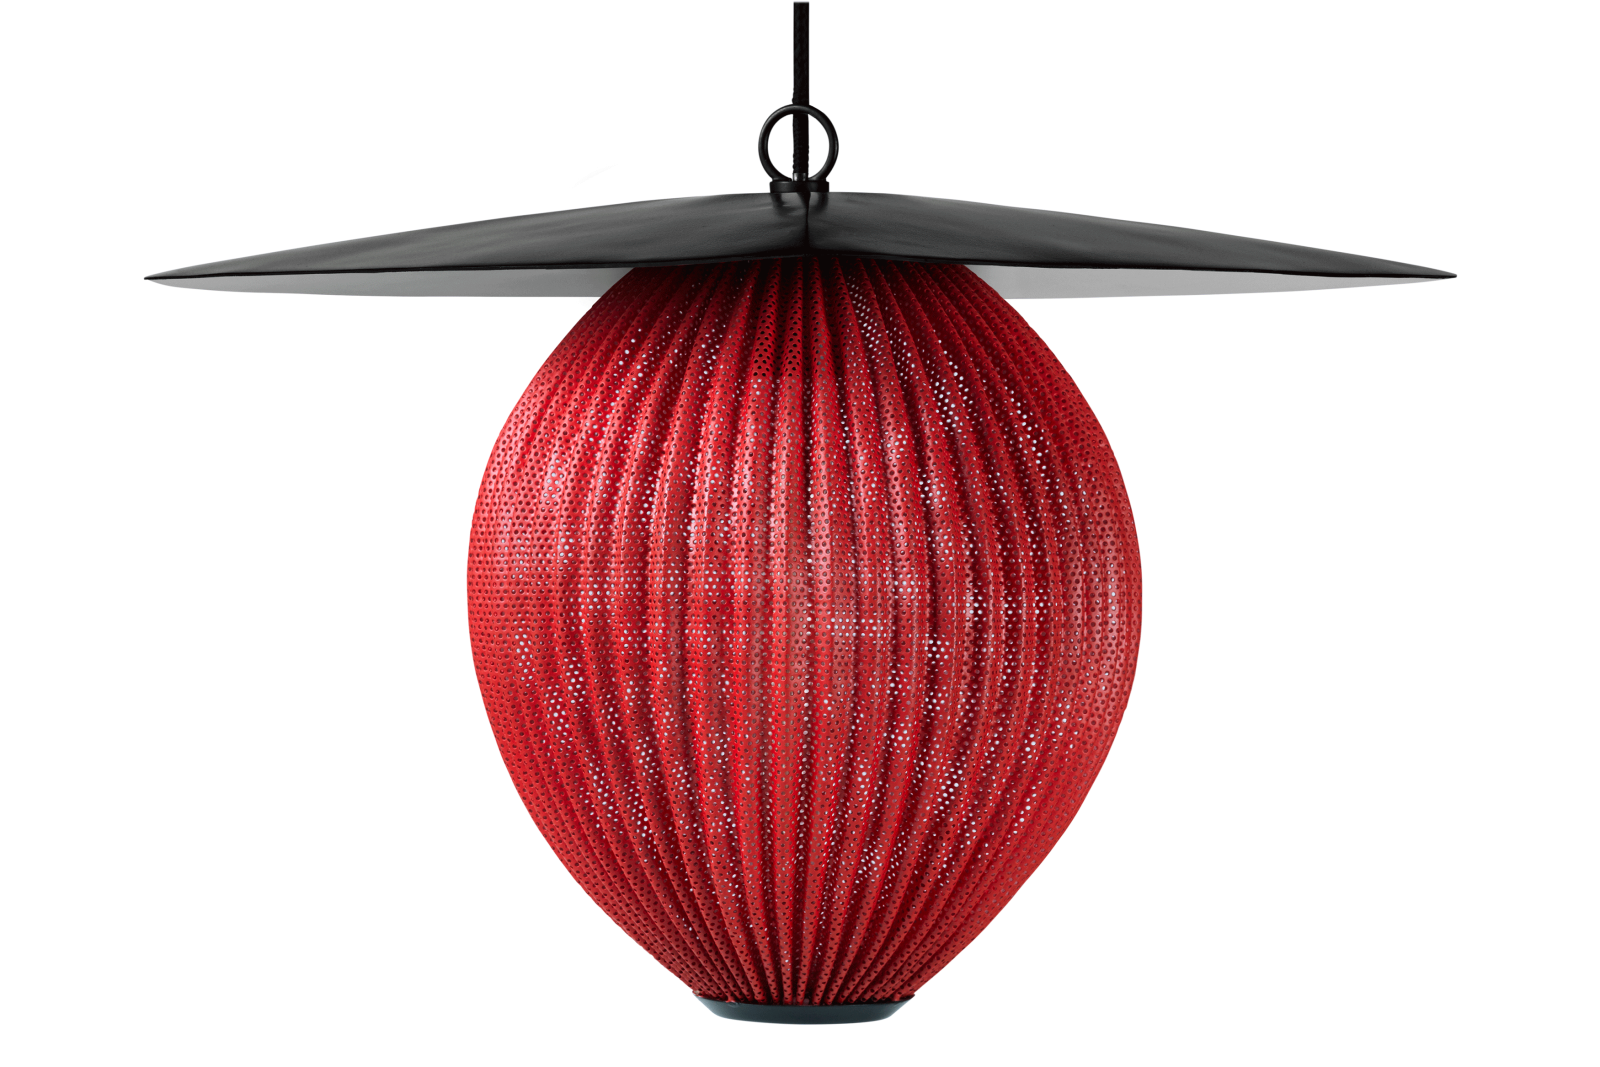 Satellite Pendant Light Ruby Red Semi Matt, Medium